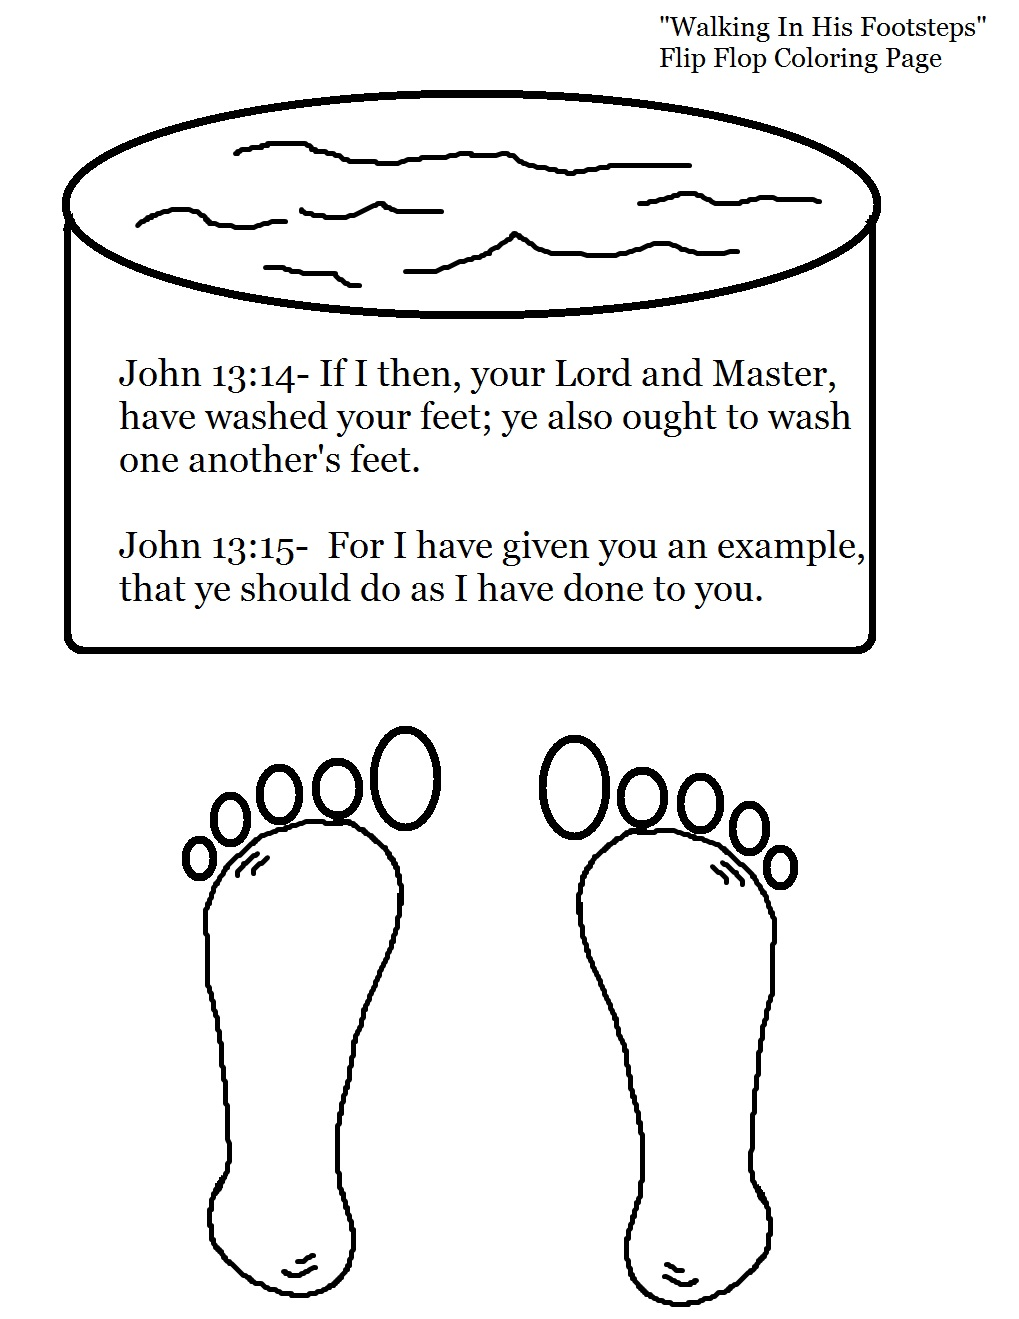 Flip Flop Sunday School Lesson